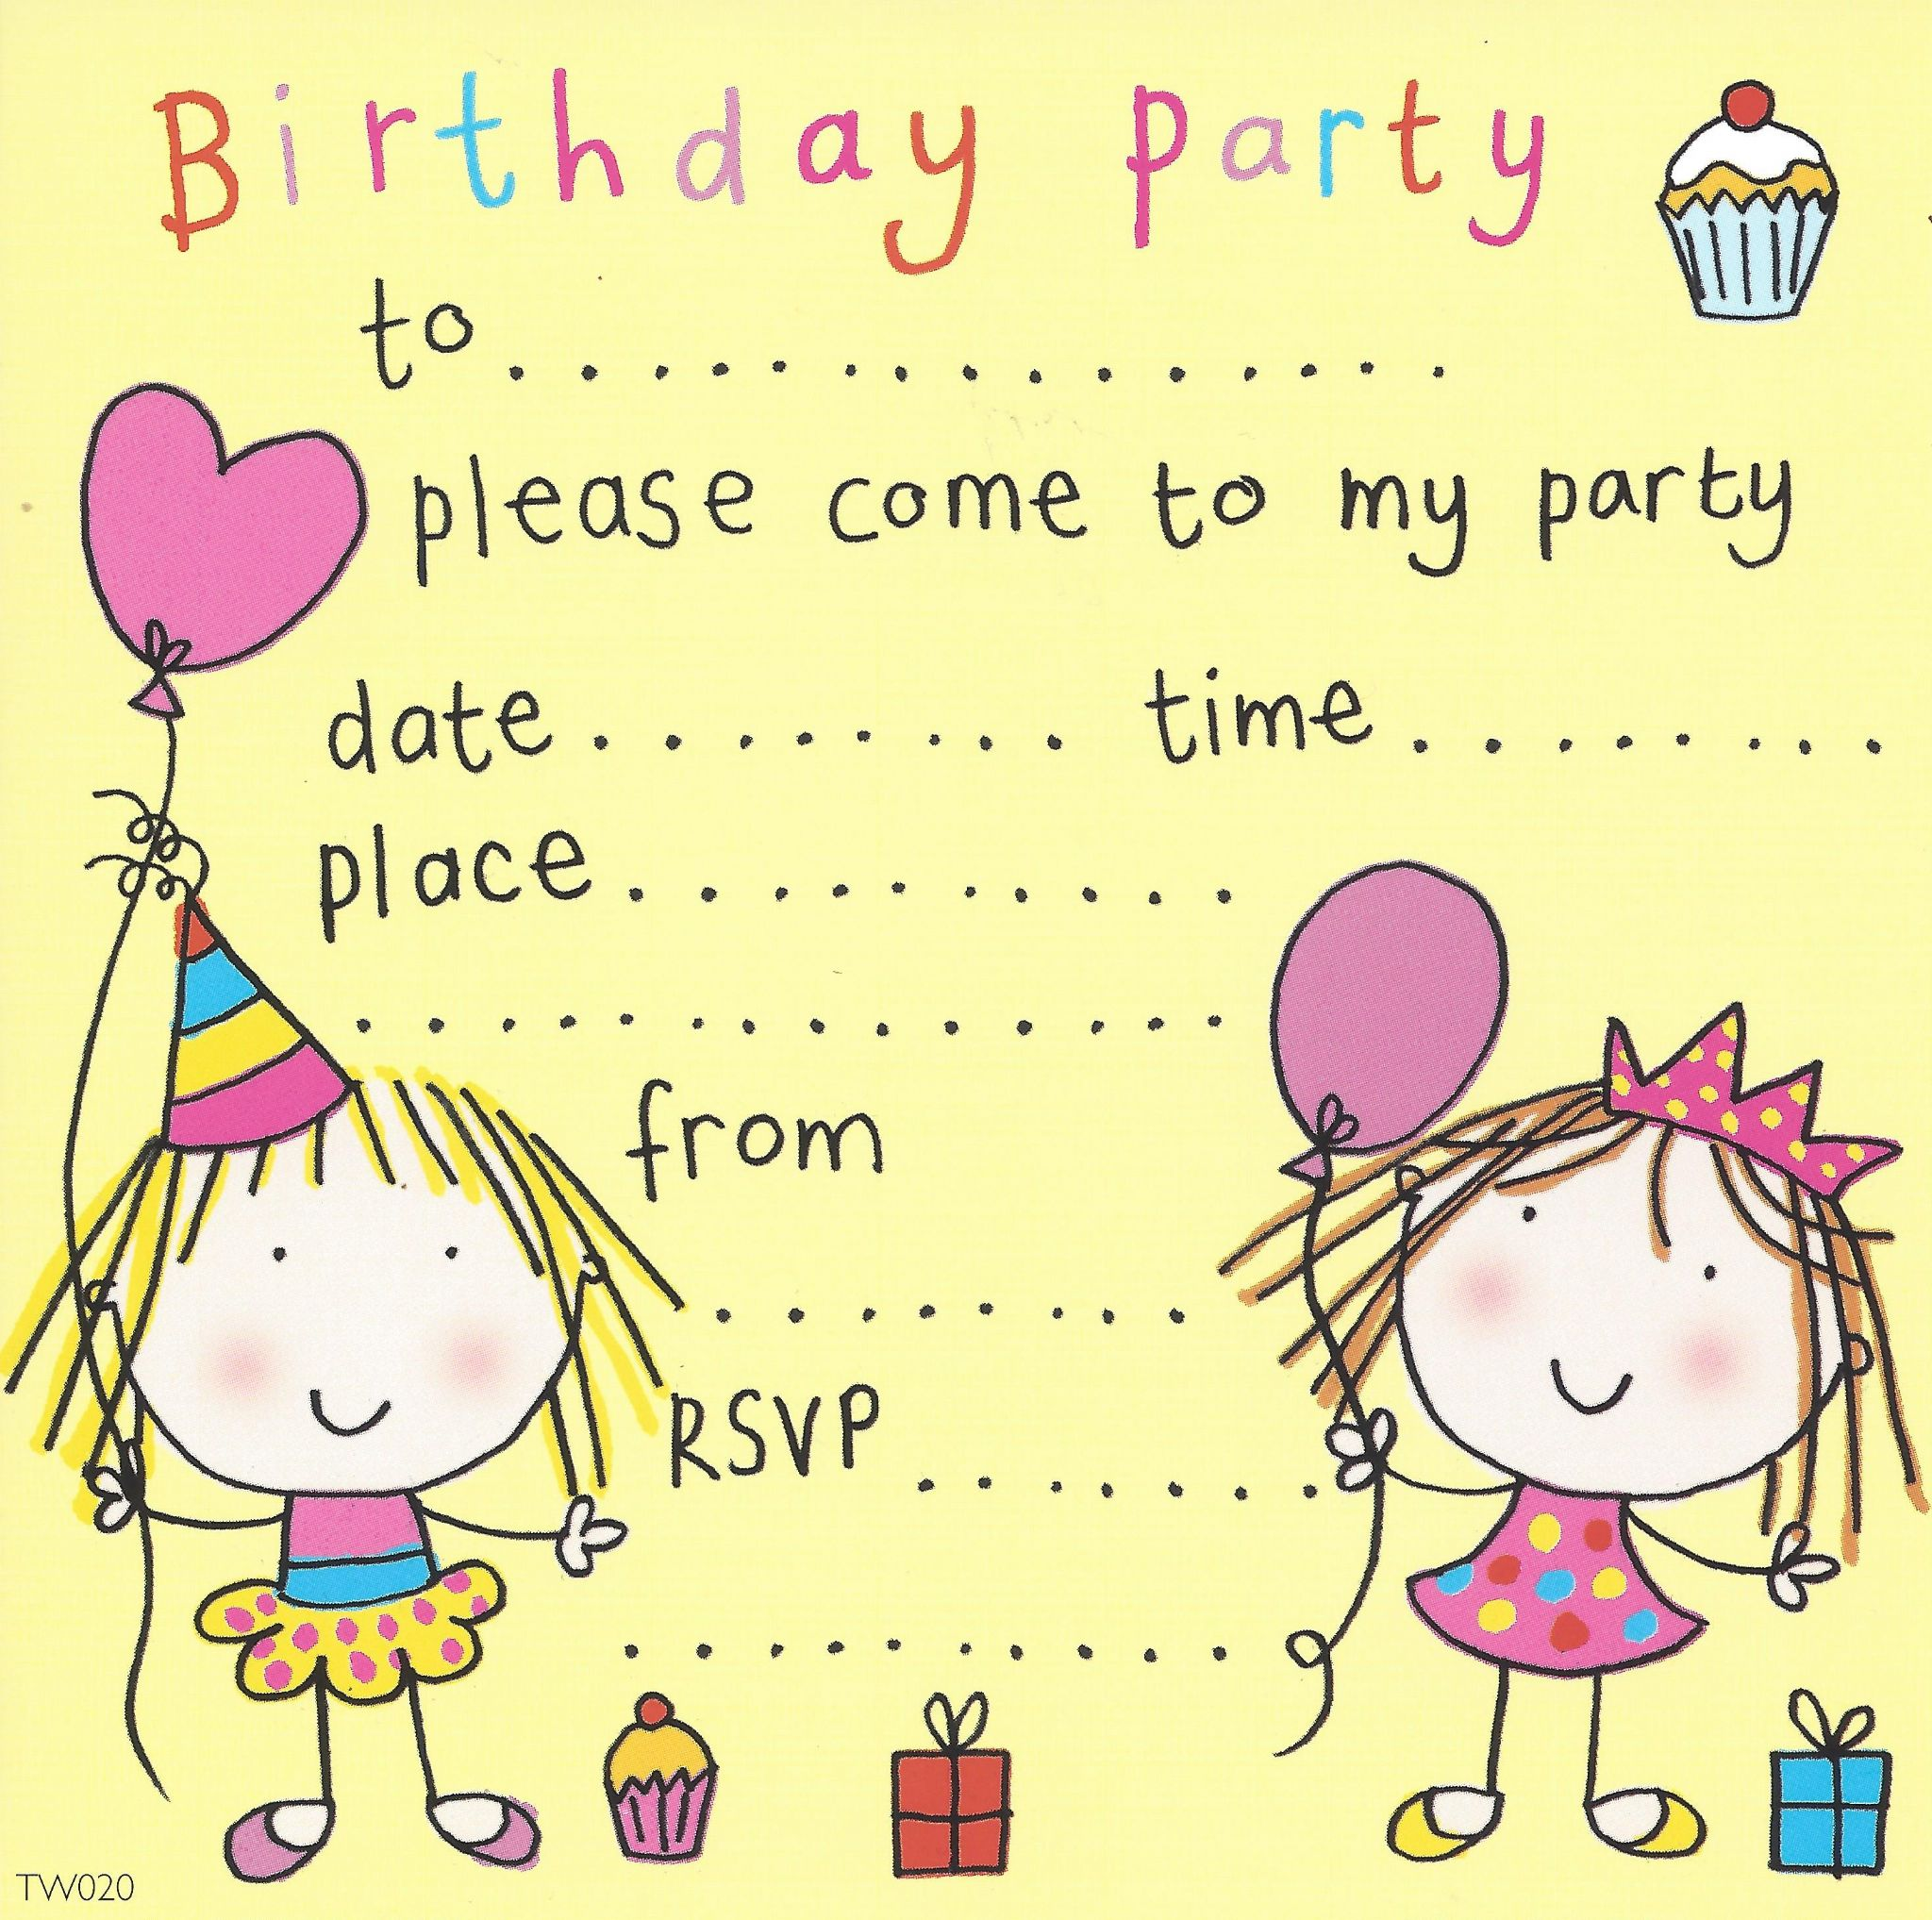 Party Invitations, Birthday Party Invitations, Kids Party